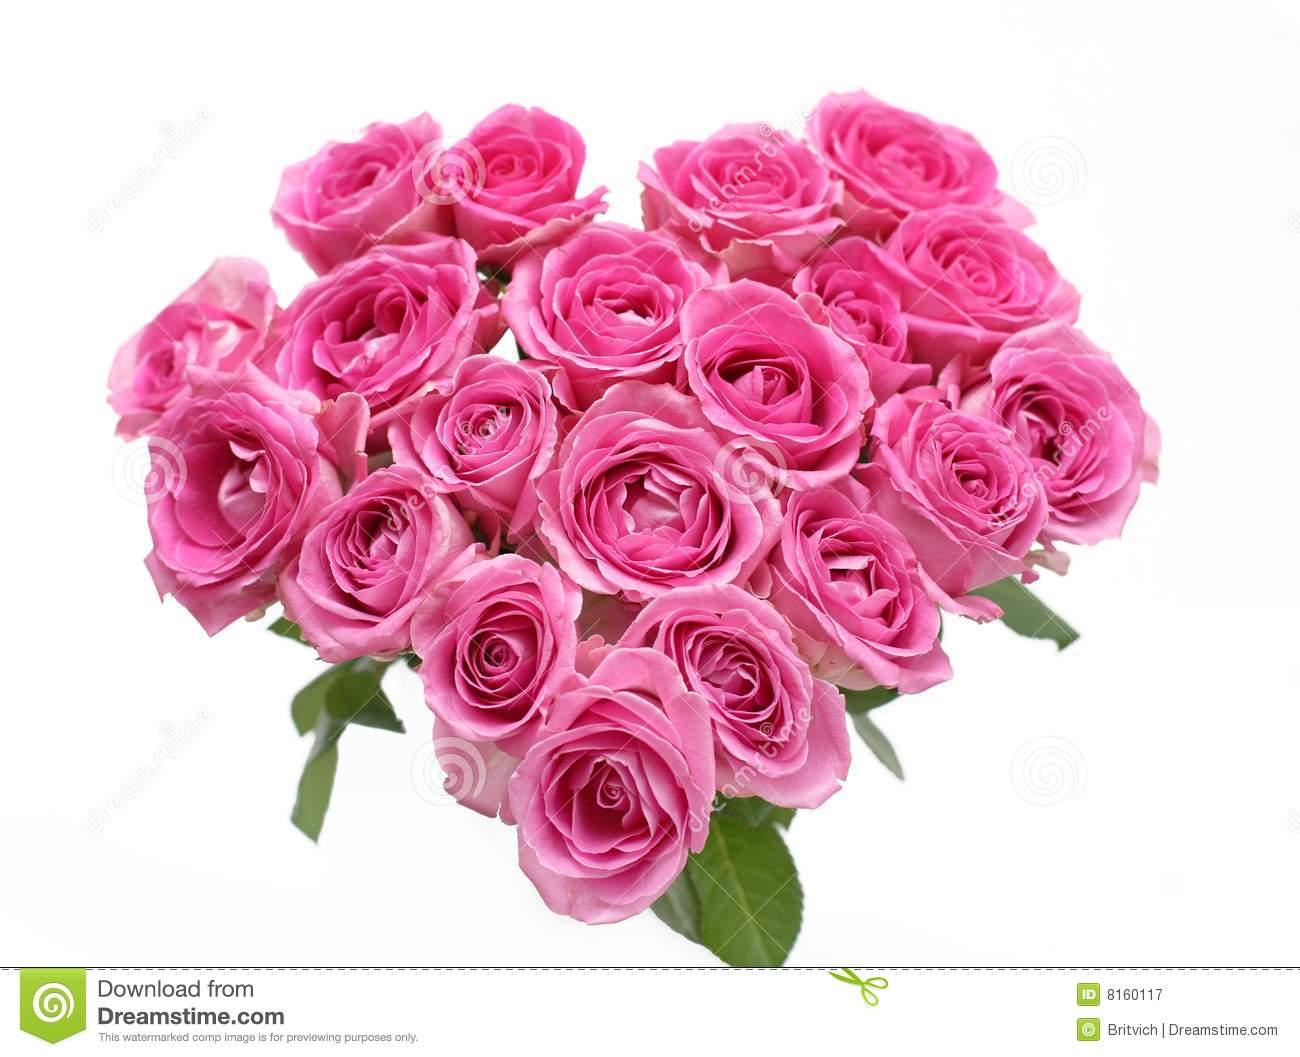 Pink roses and hearts wallpapers gallery - Pics of roses and hearts ...